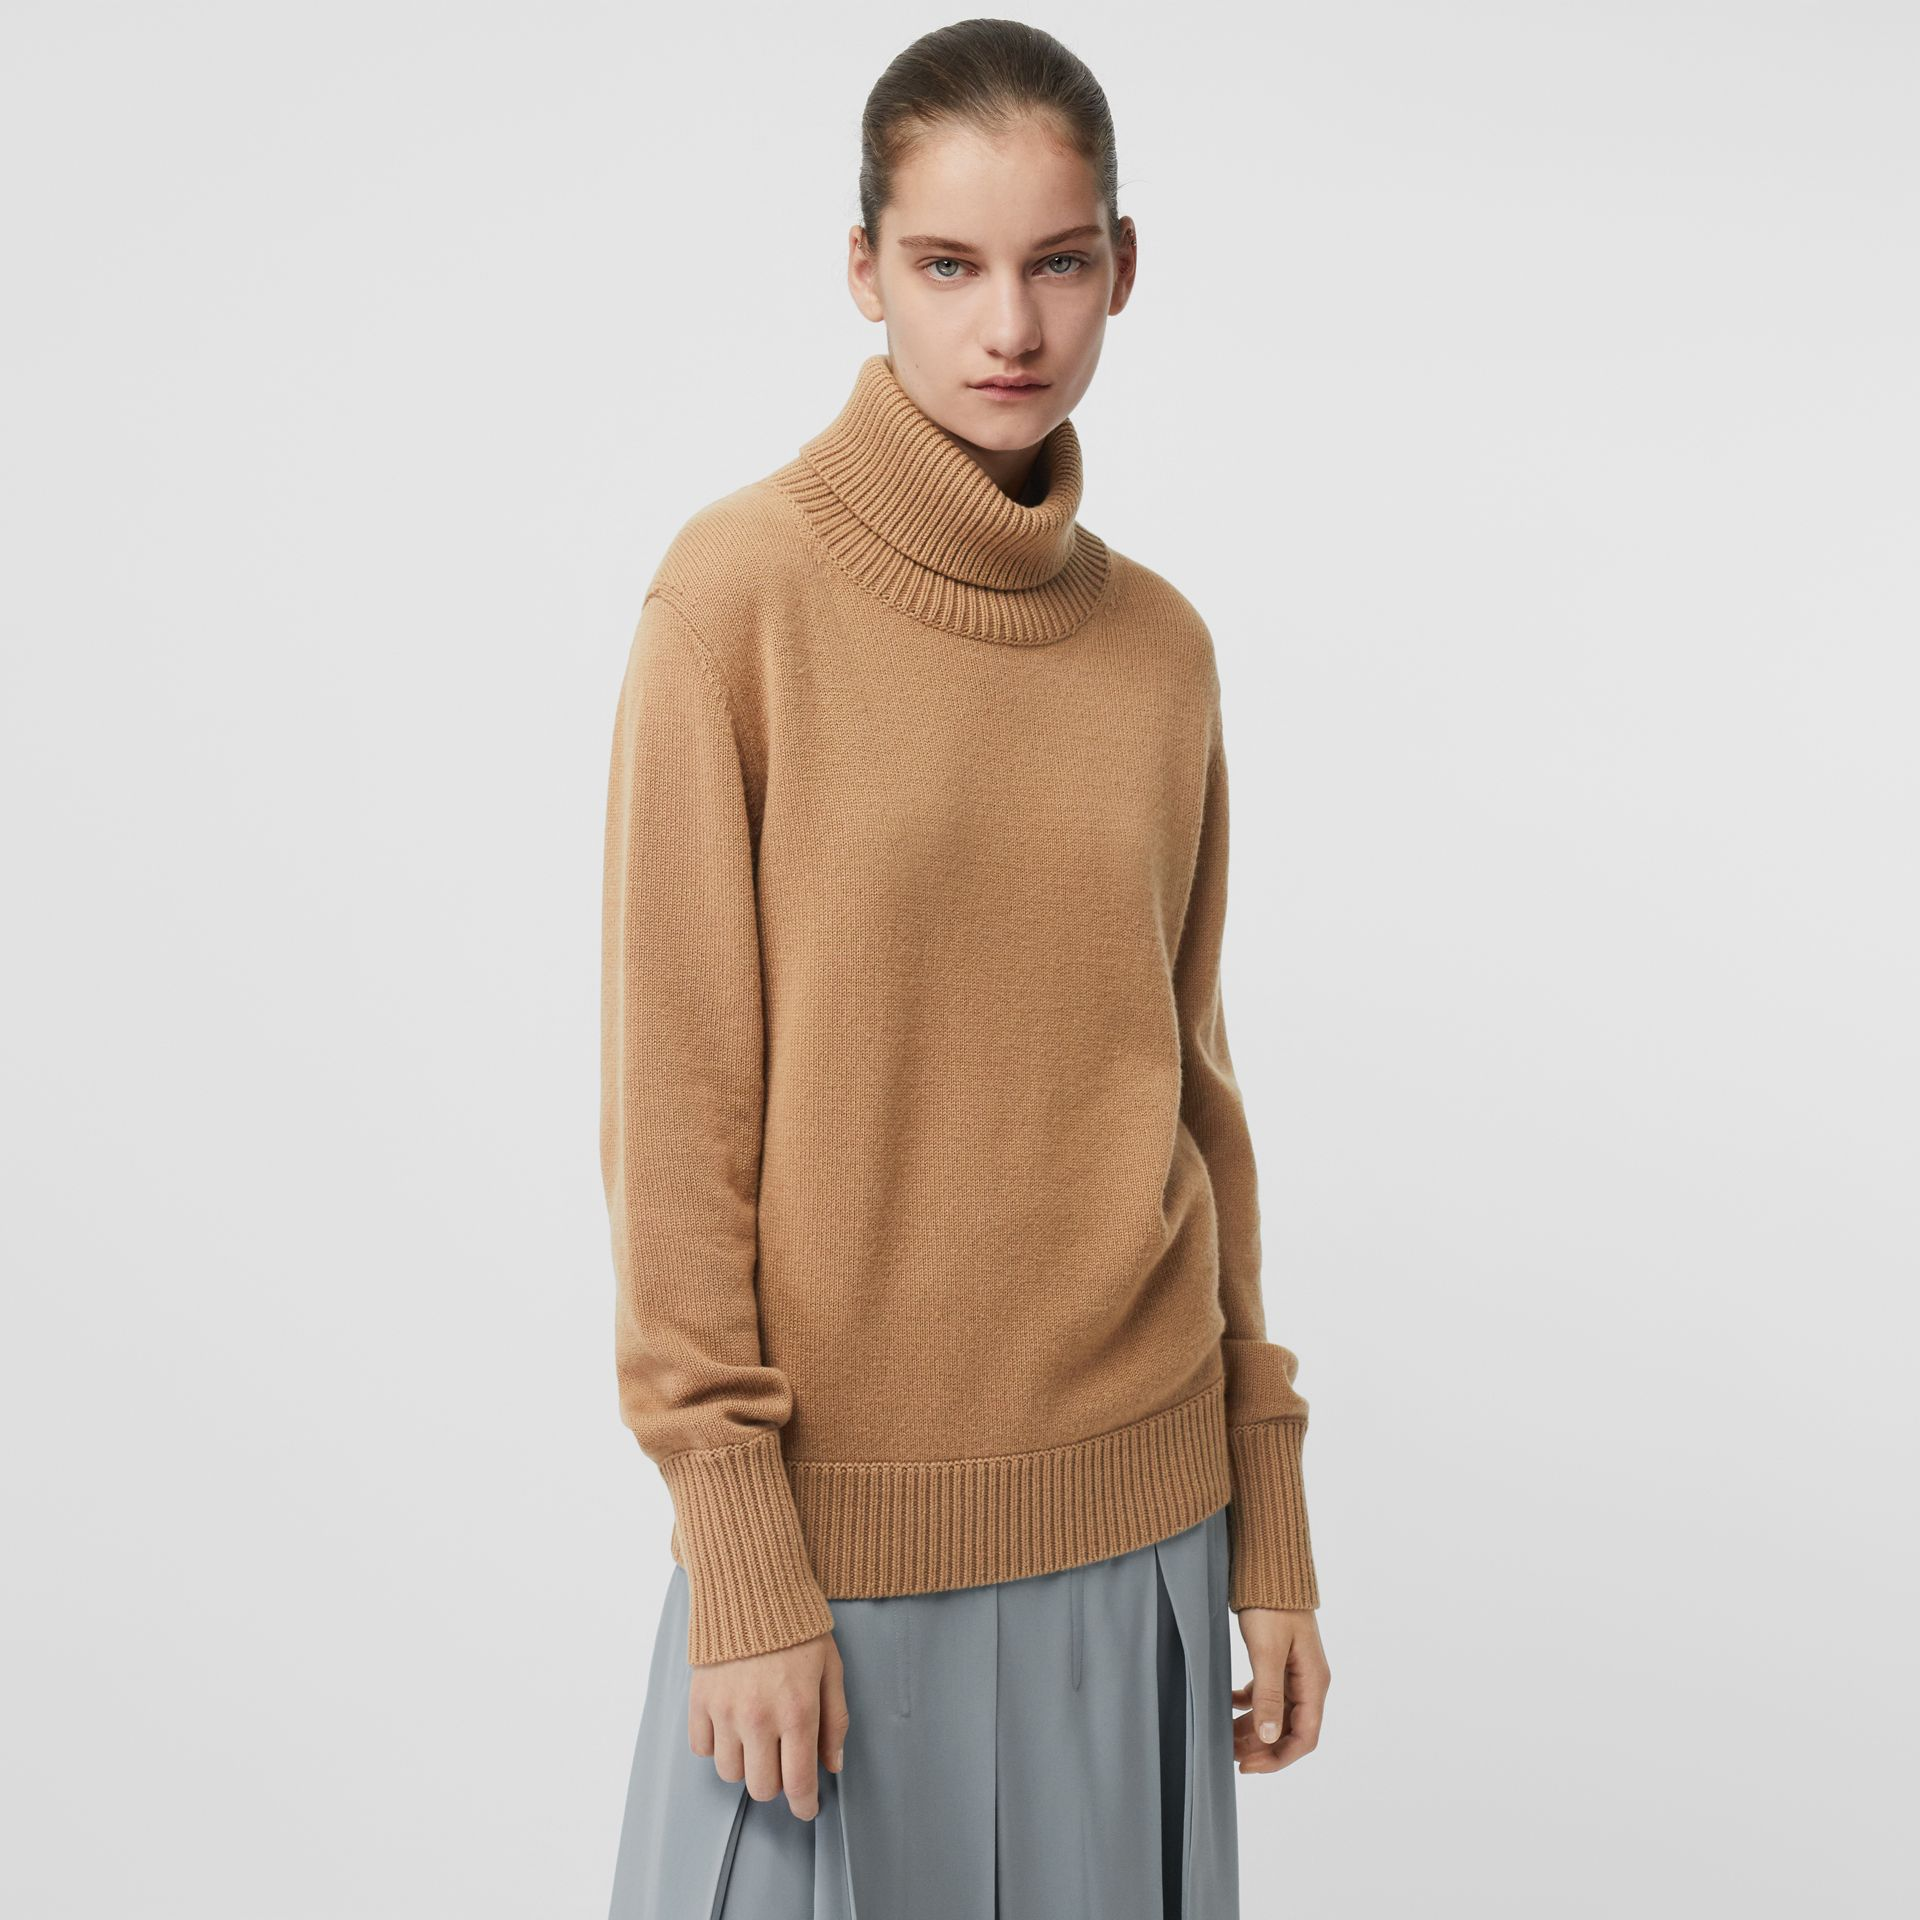 Embroidered Crest Cashmere Roll-neck Sweater in Camel - Women | Burberry Hong Kong - gallery image 0